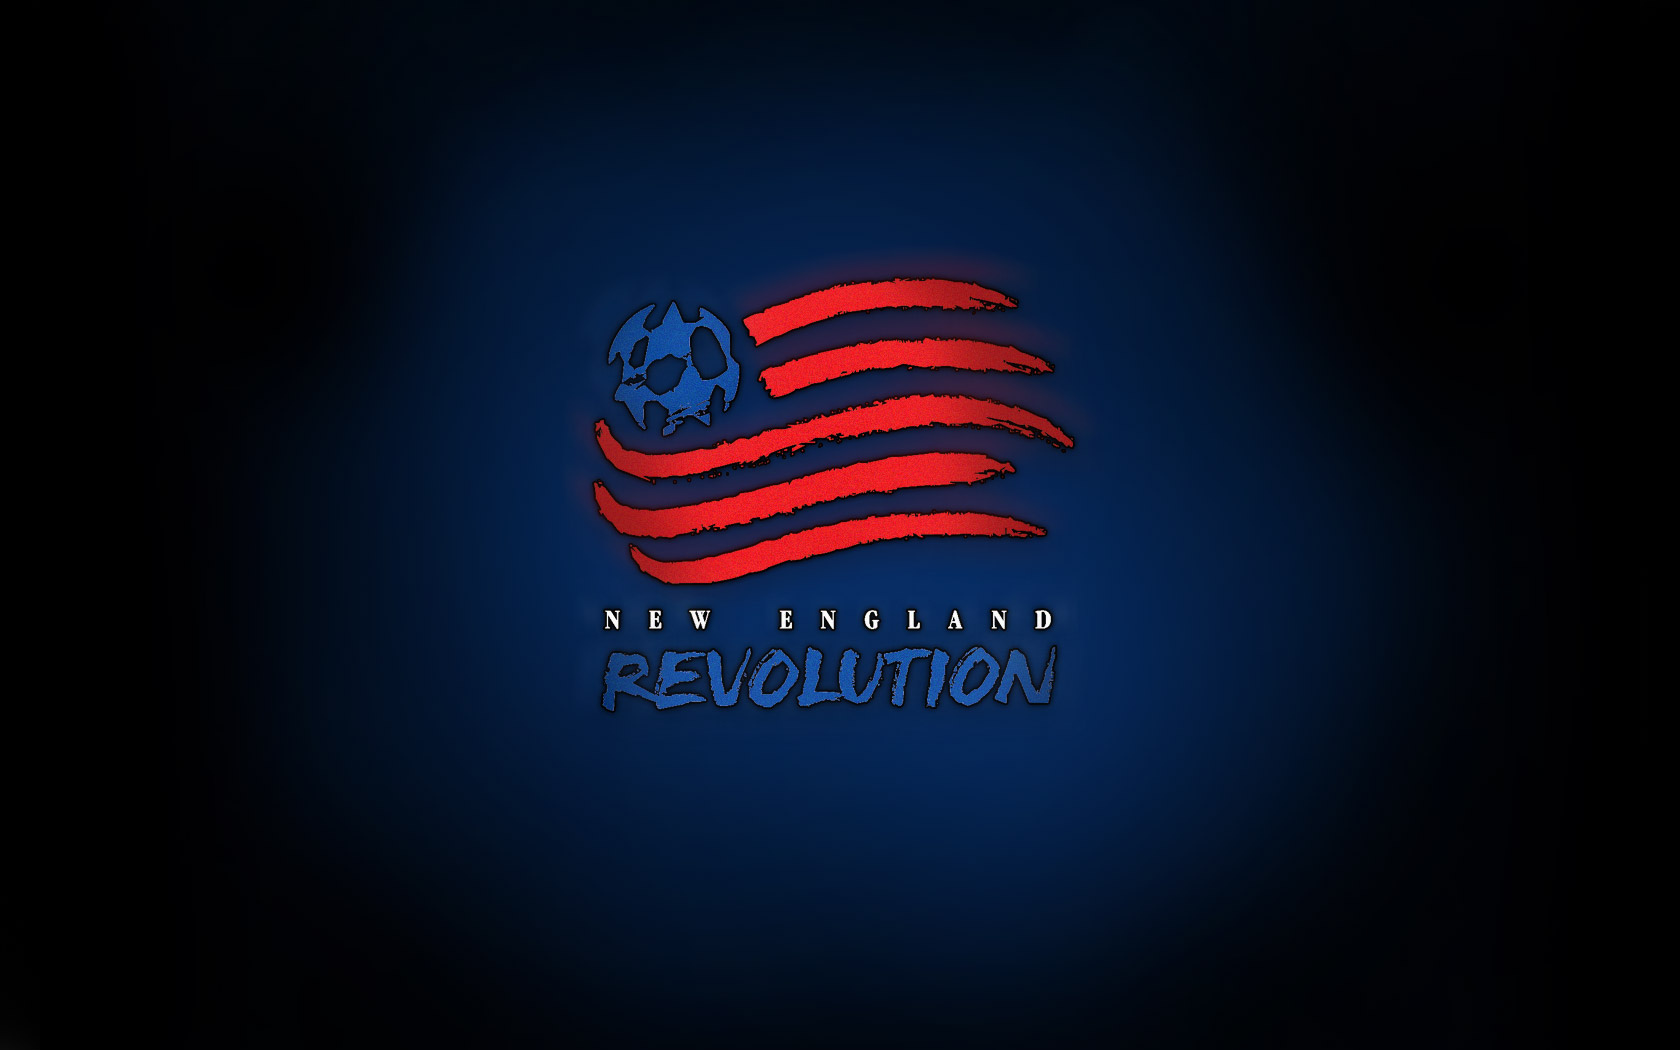 New England Revolution Football Wallpaper 1680x1050